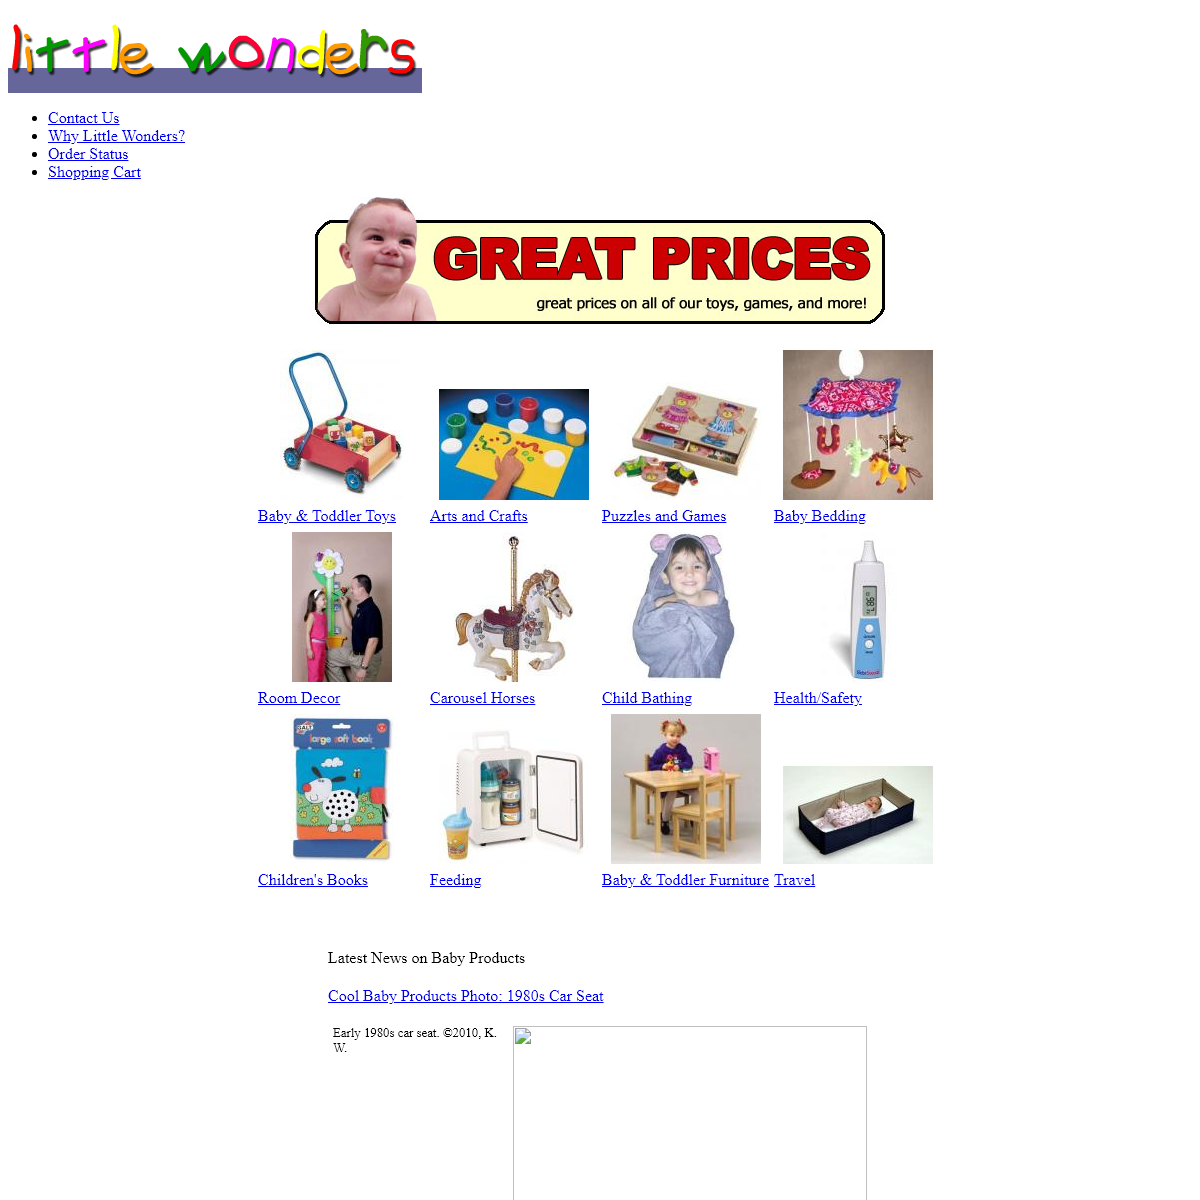 Baby gifts & baby products from the Little Wonders baby store